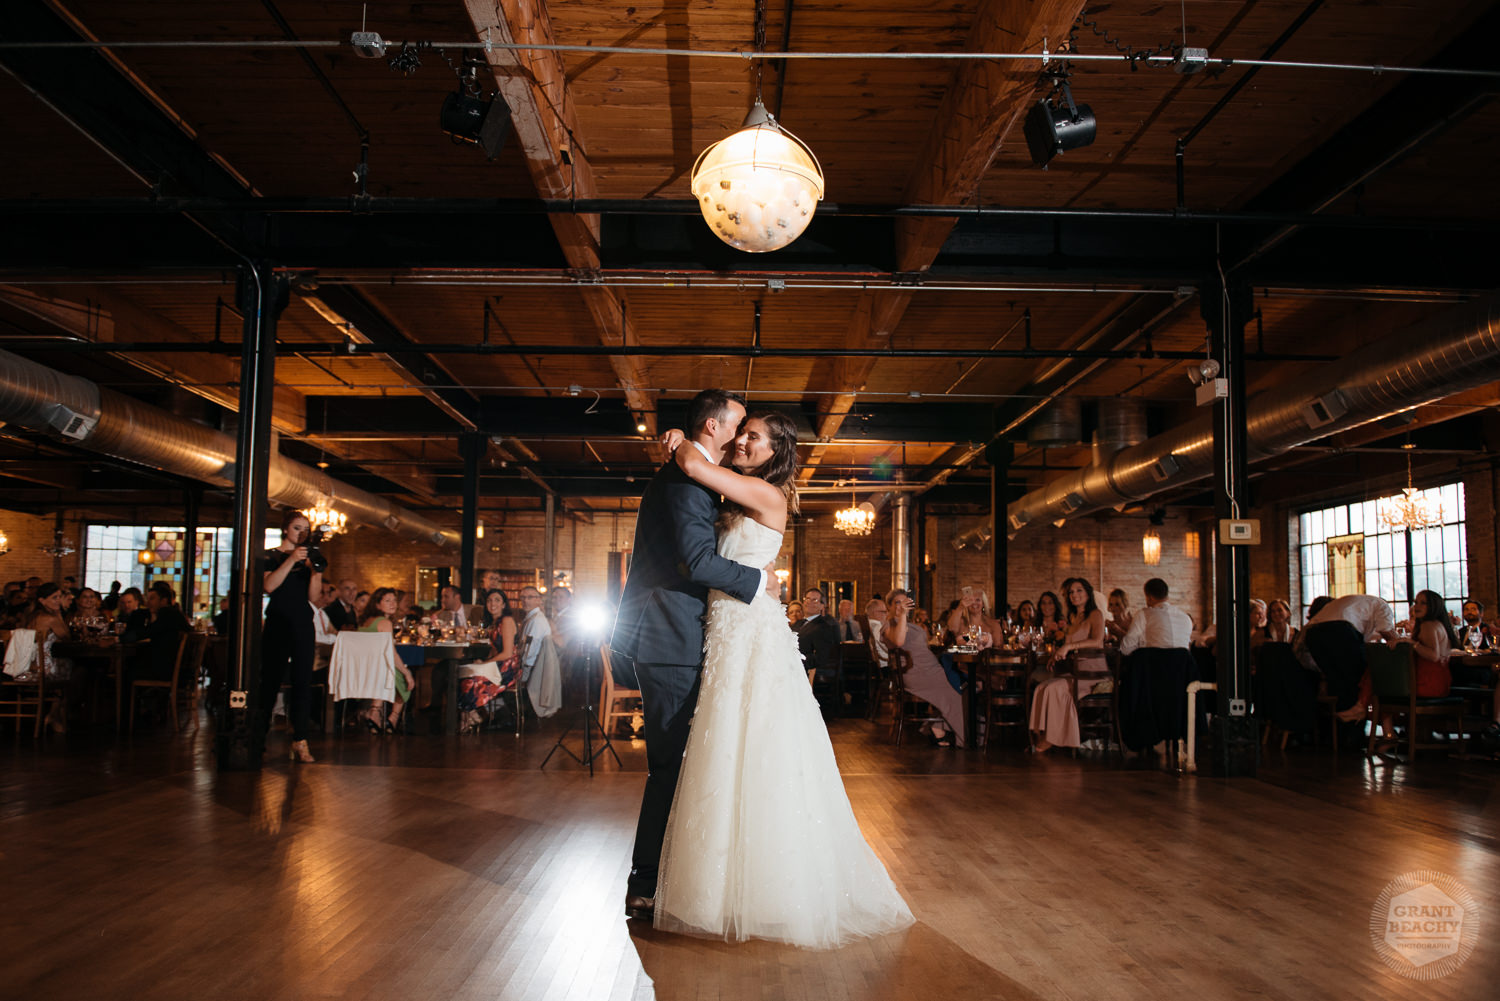 Chicago wedding photographer Grant Beachy-73.jpg